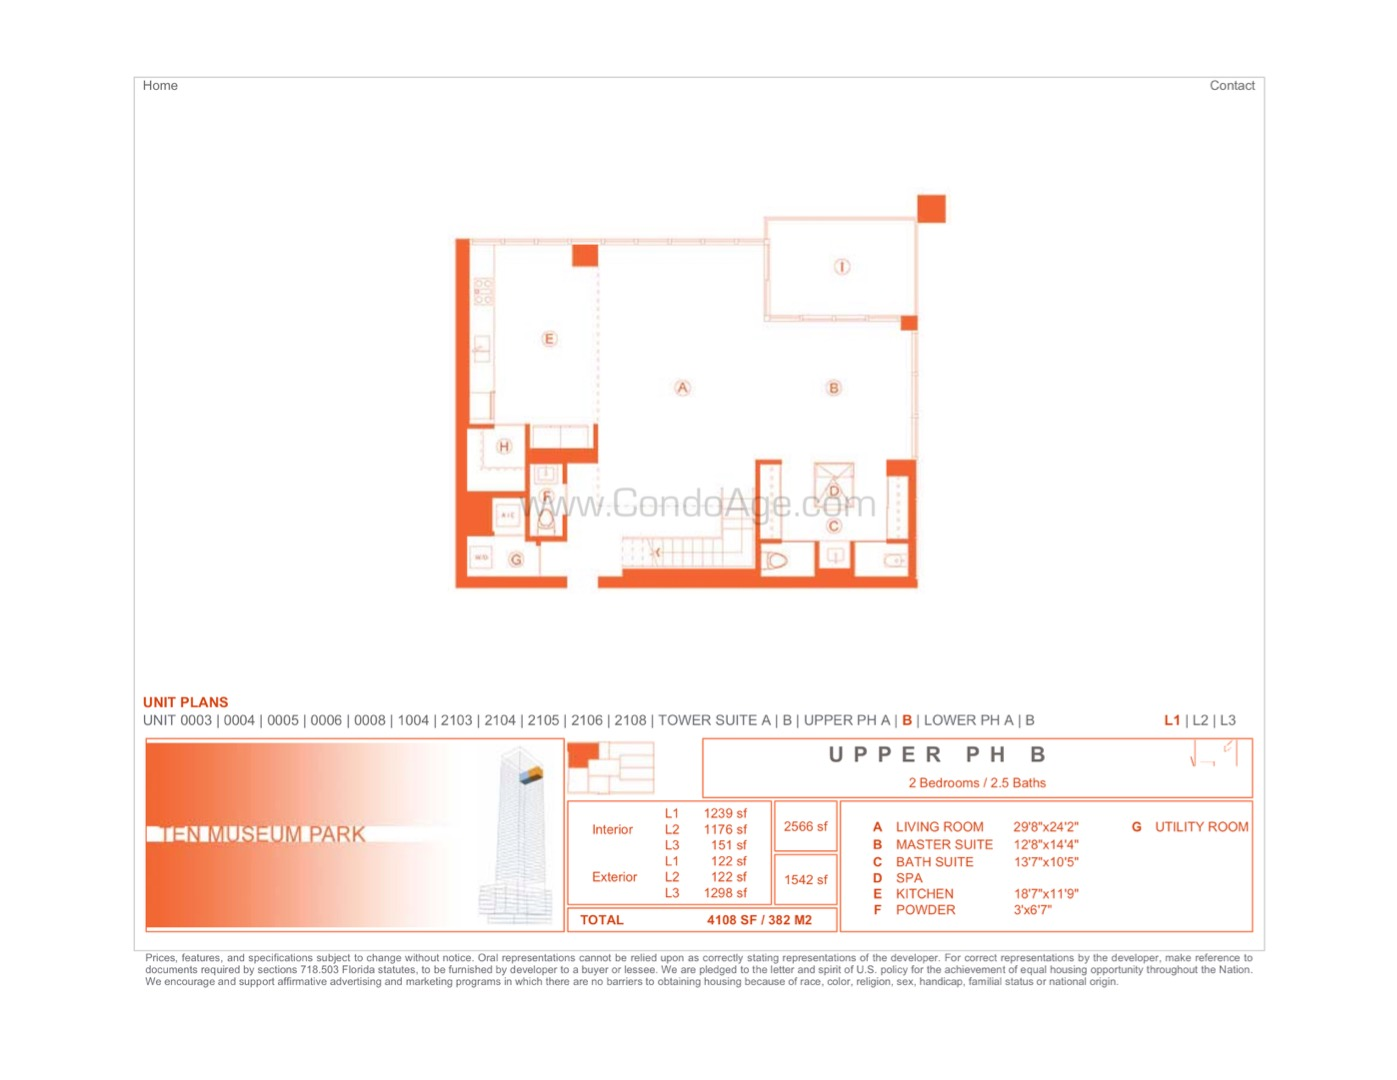 Floor plan image UPHB - 2/2/1  - 2566 sqft image